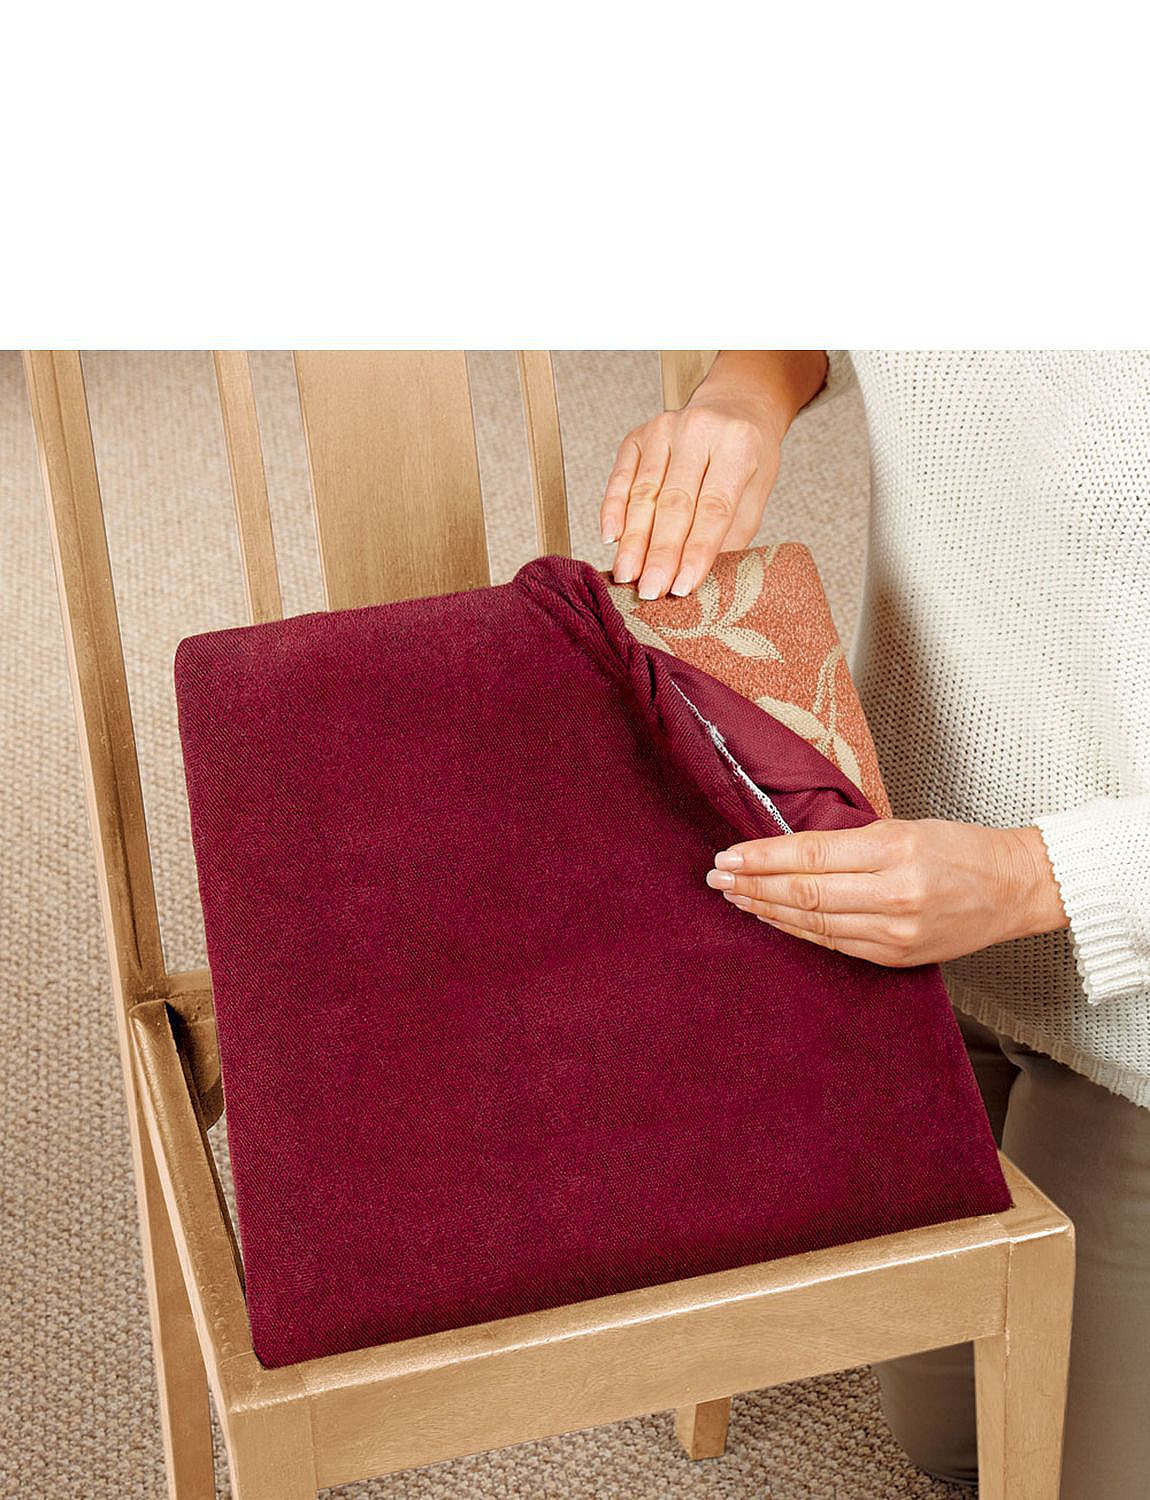 kitchen chair covers